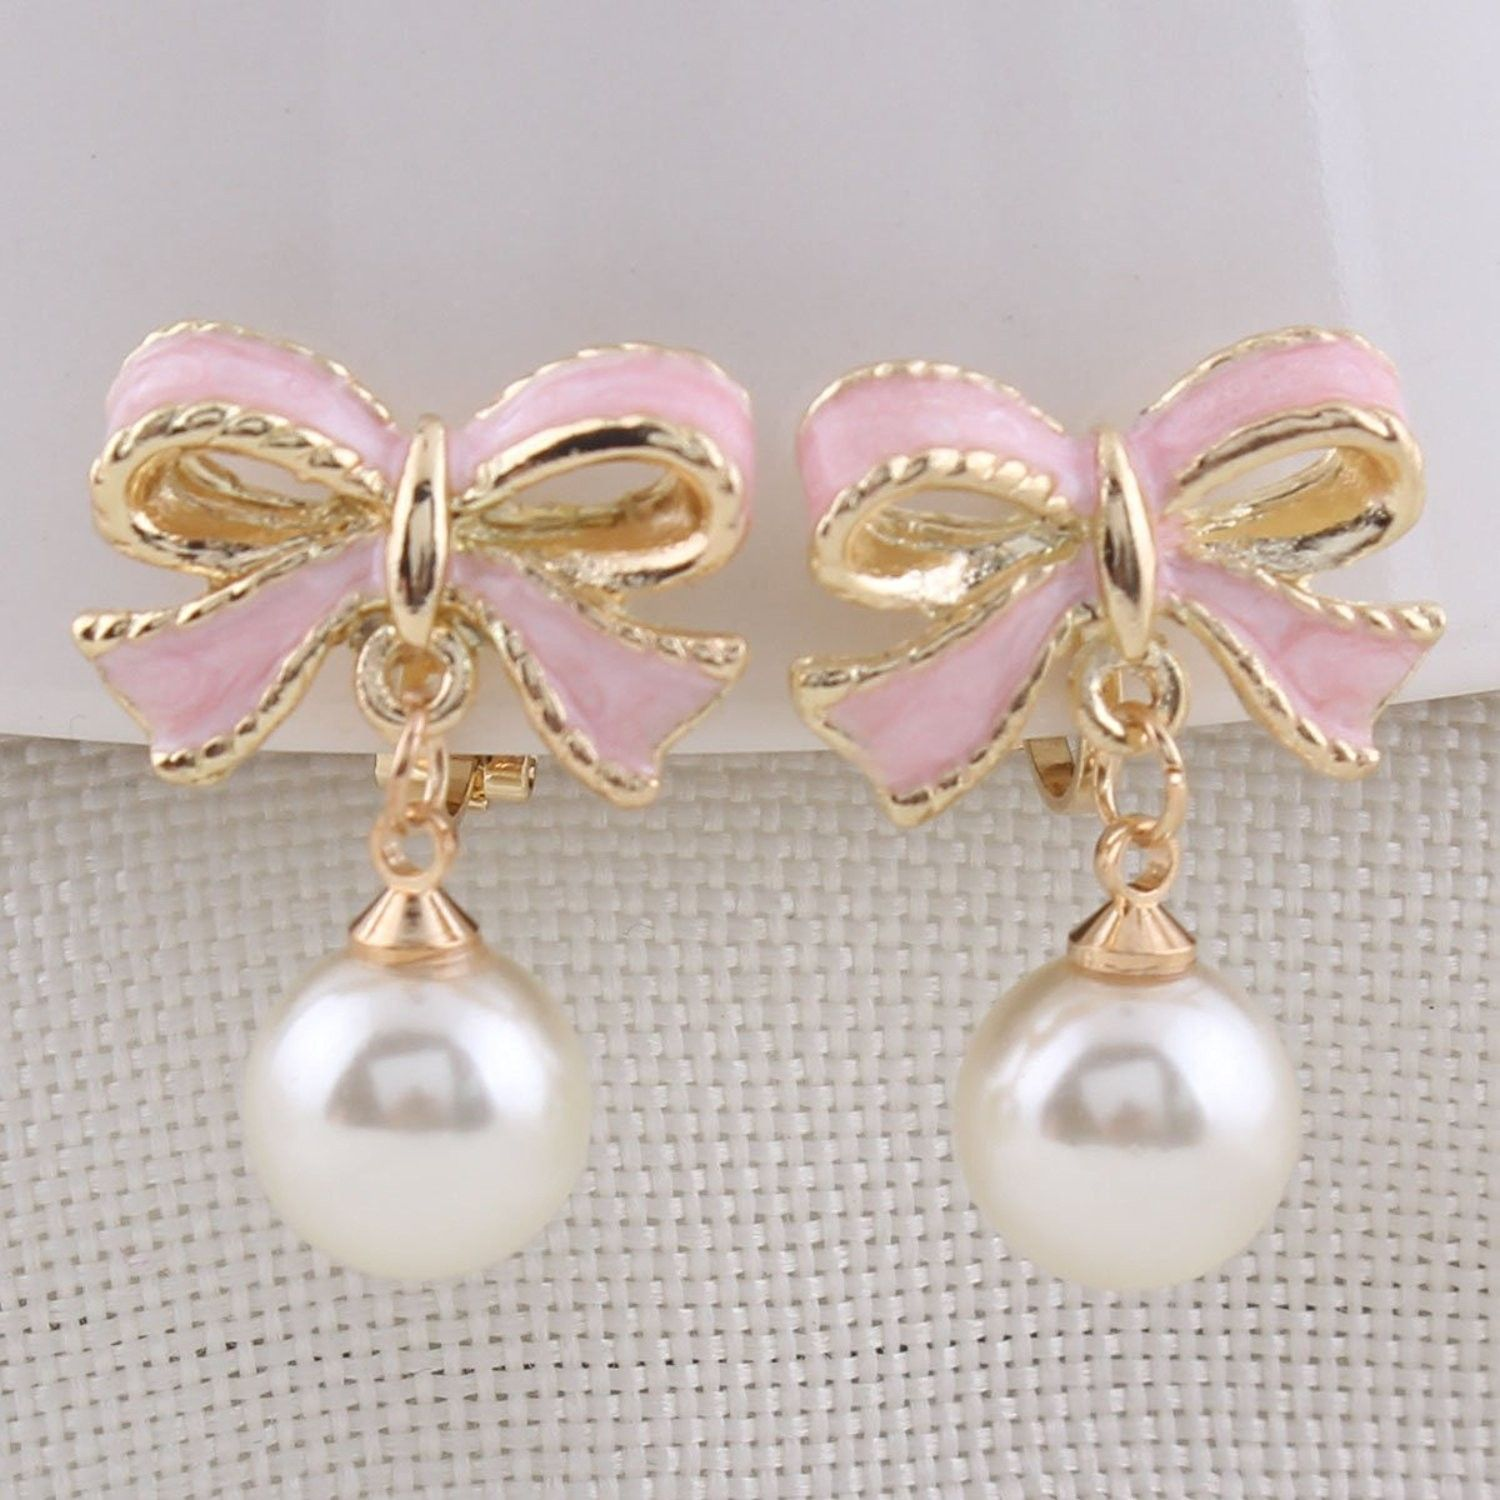 Pink Bowknot Shape Clip on Earrings Without Piercing for